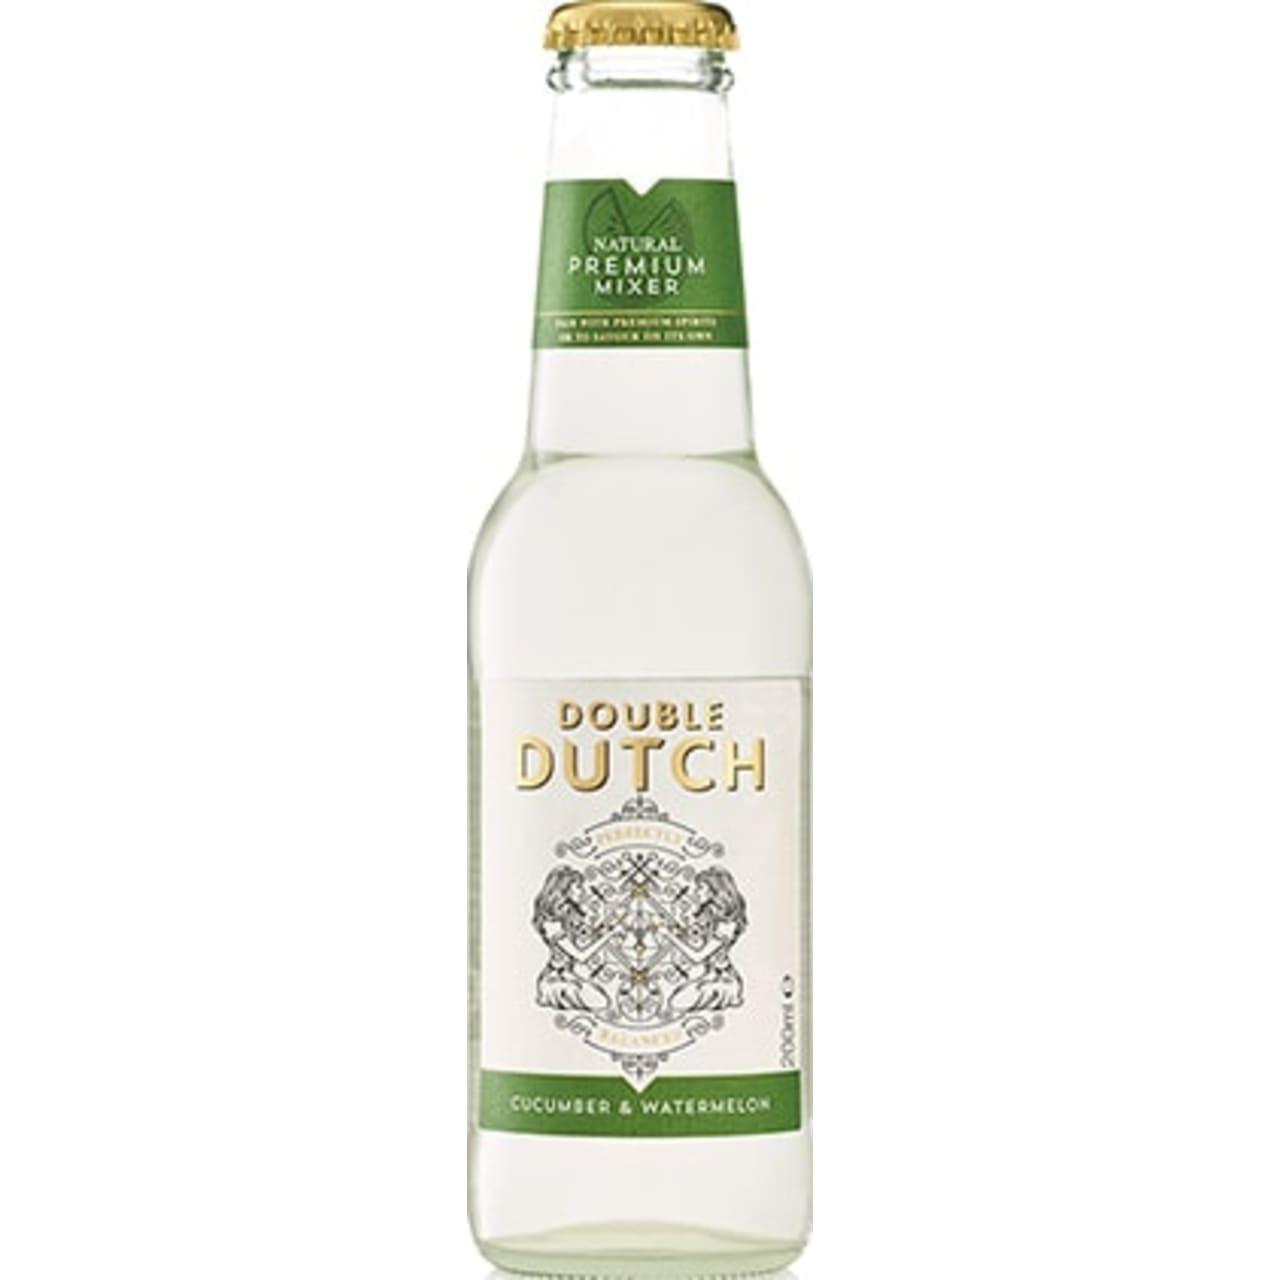 Product Image - Double Dutch Cucumber and Watermelon Tonic Pack of 12